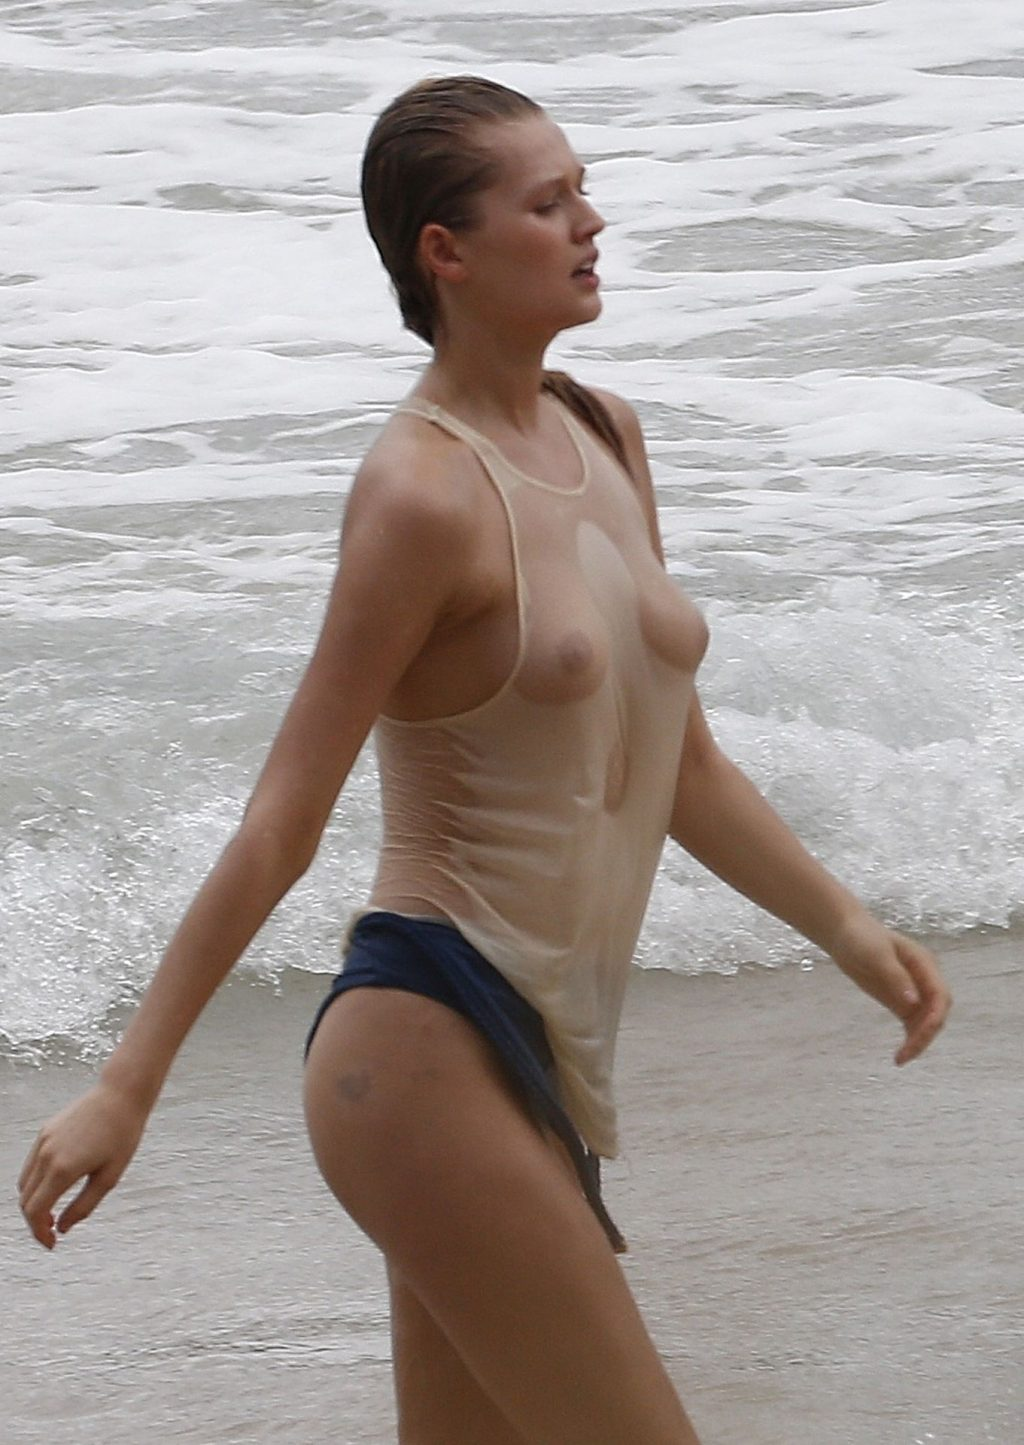 Toni Garrn Shows Her Tits in a Wet Top (9 Photos)